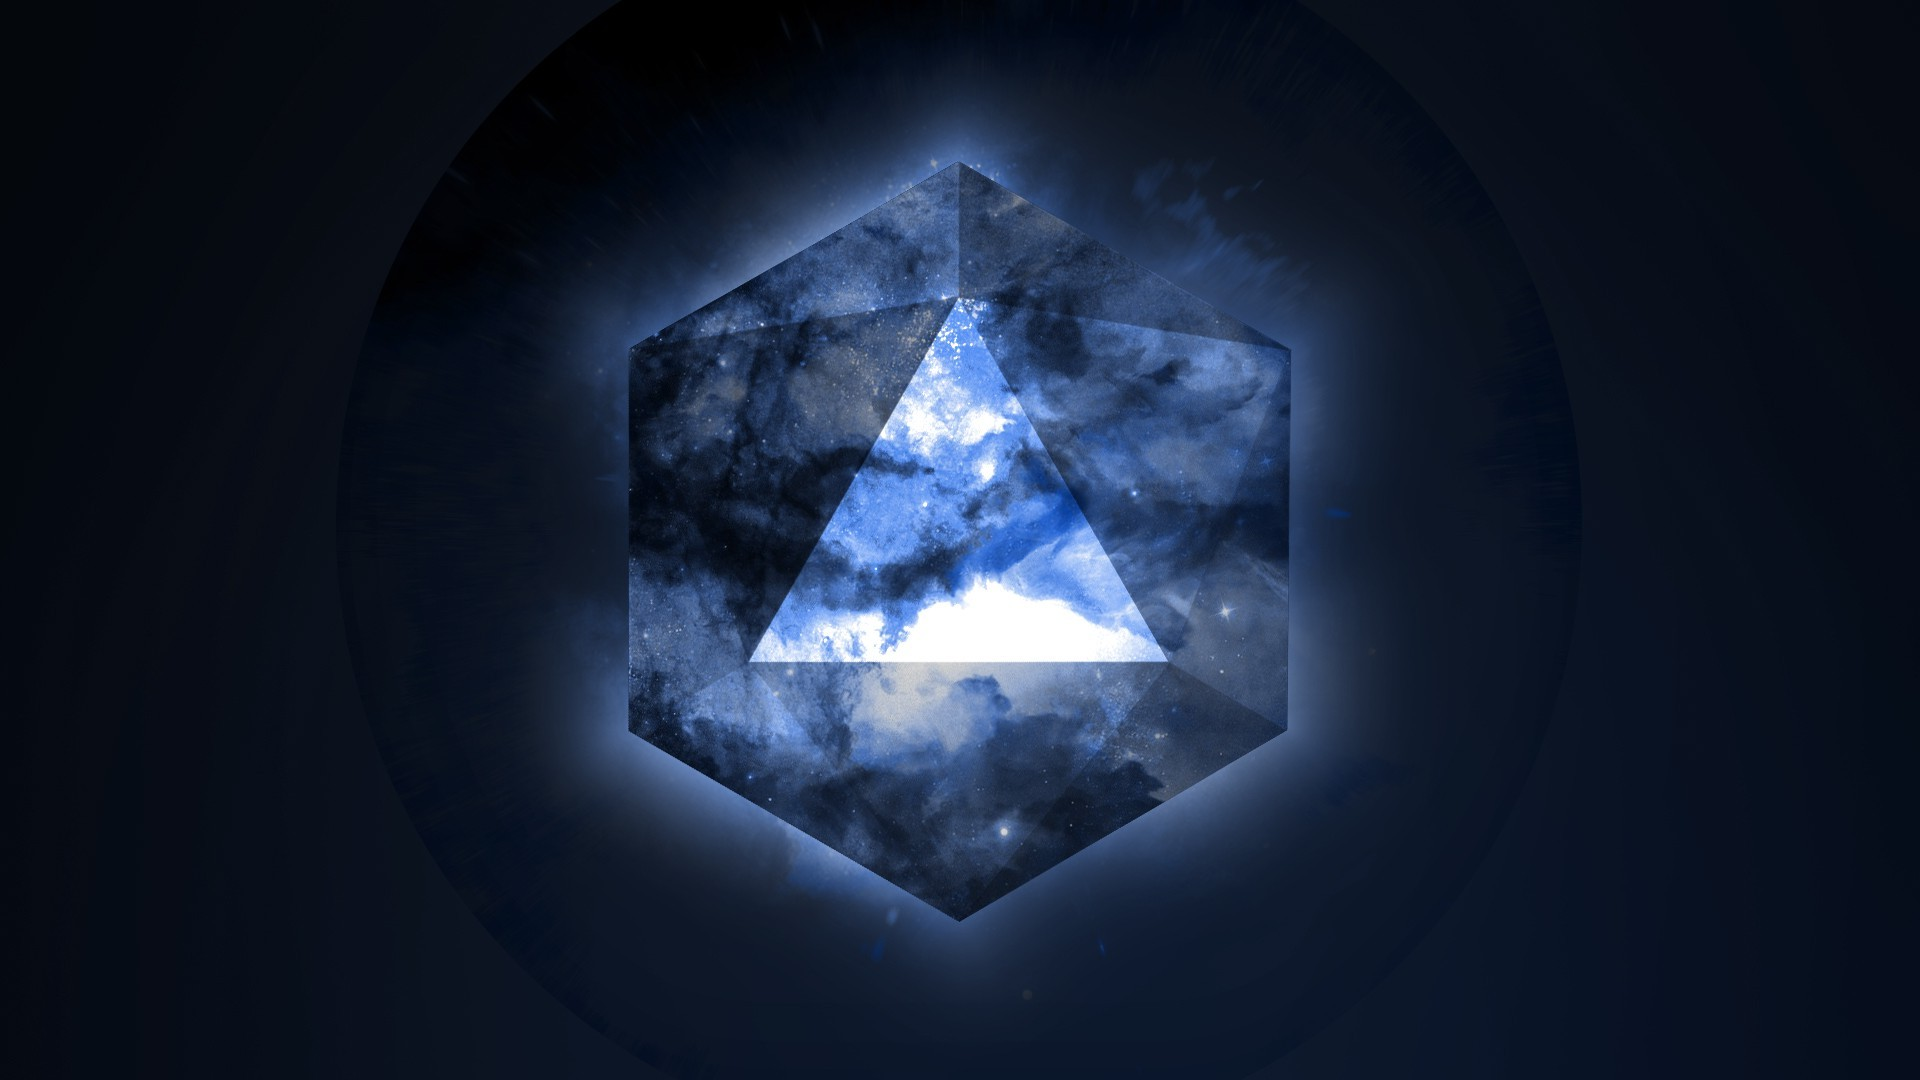 3d Hologram Wallpaper For Pc Space Geometry Stars Triangle Illuminati Blue